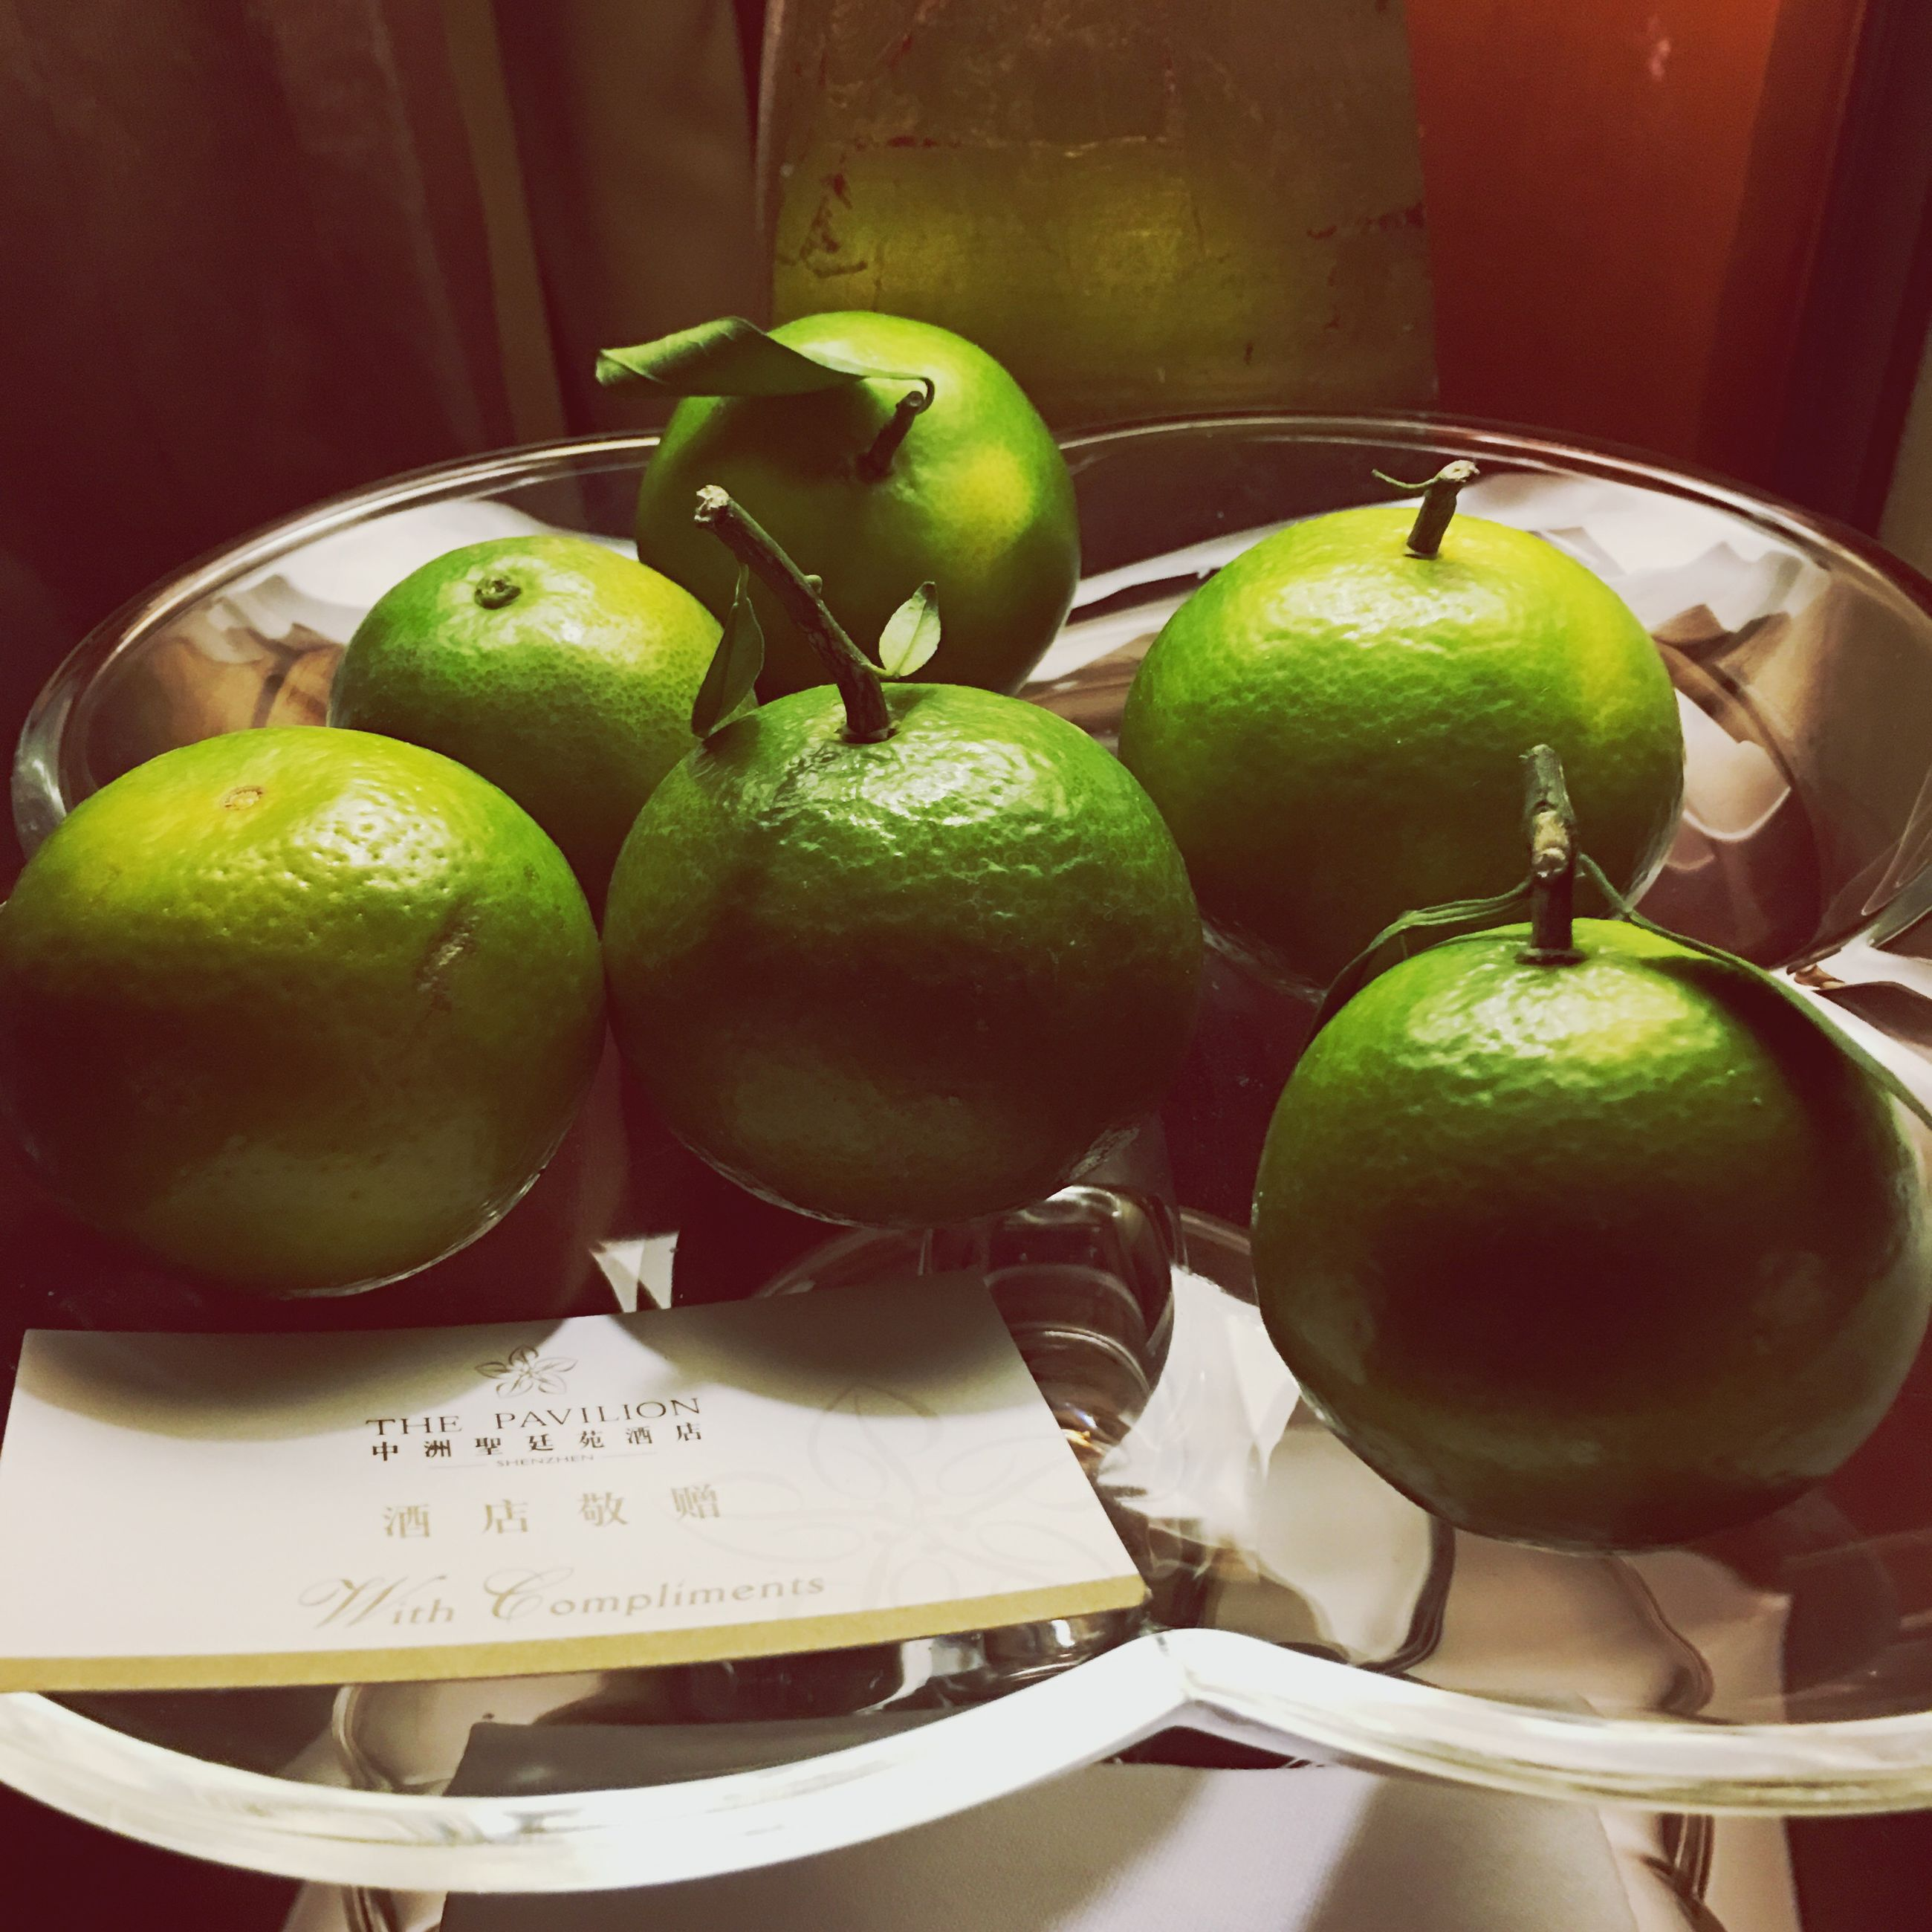 fruit, healthy eating, freshness, food, no people, close-up, green color, indoors, granny smith apple, day